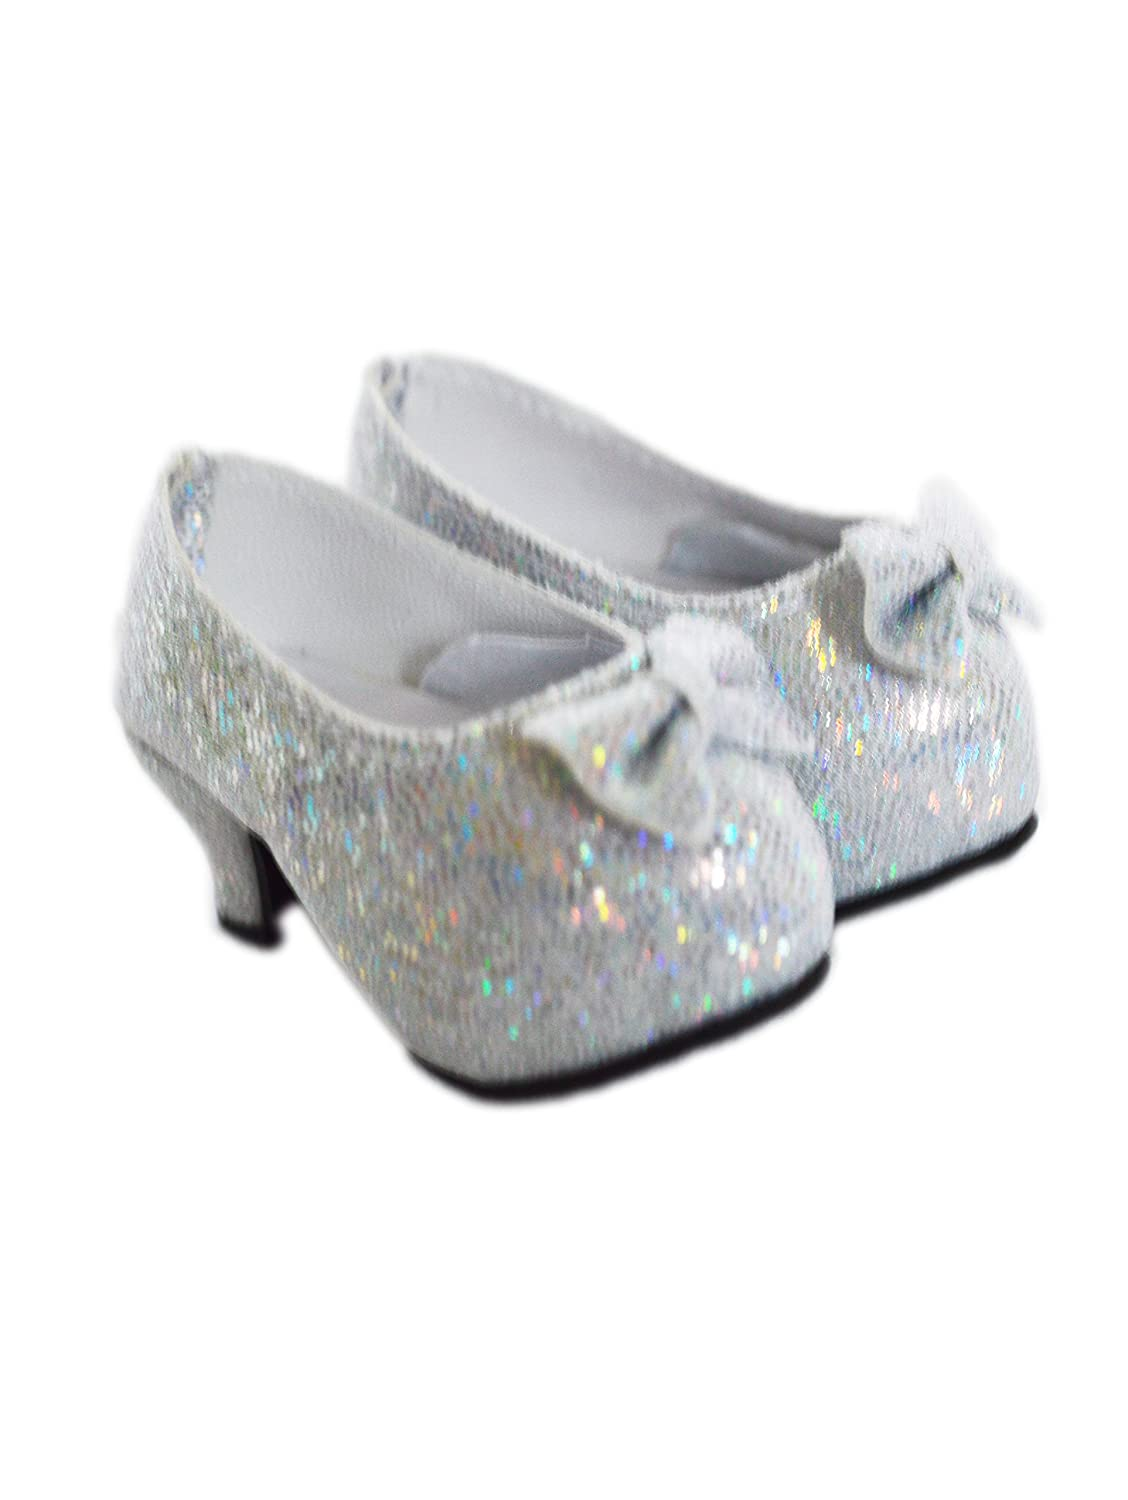 My Brittany's Silver Bow High Heel Shoes for Wellie Wisher Dolls Brittany' s